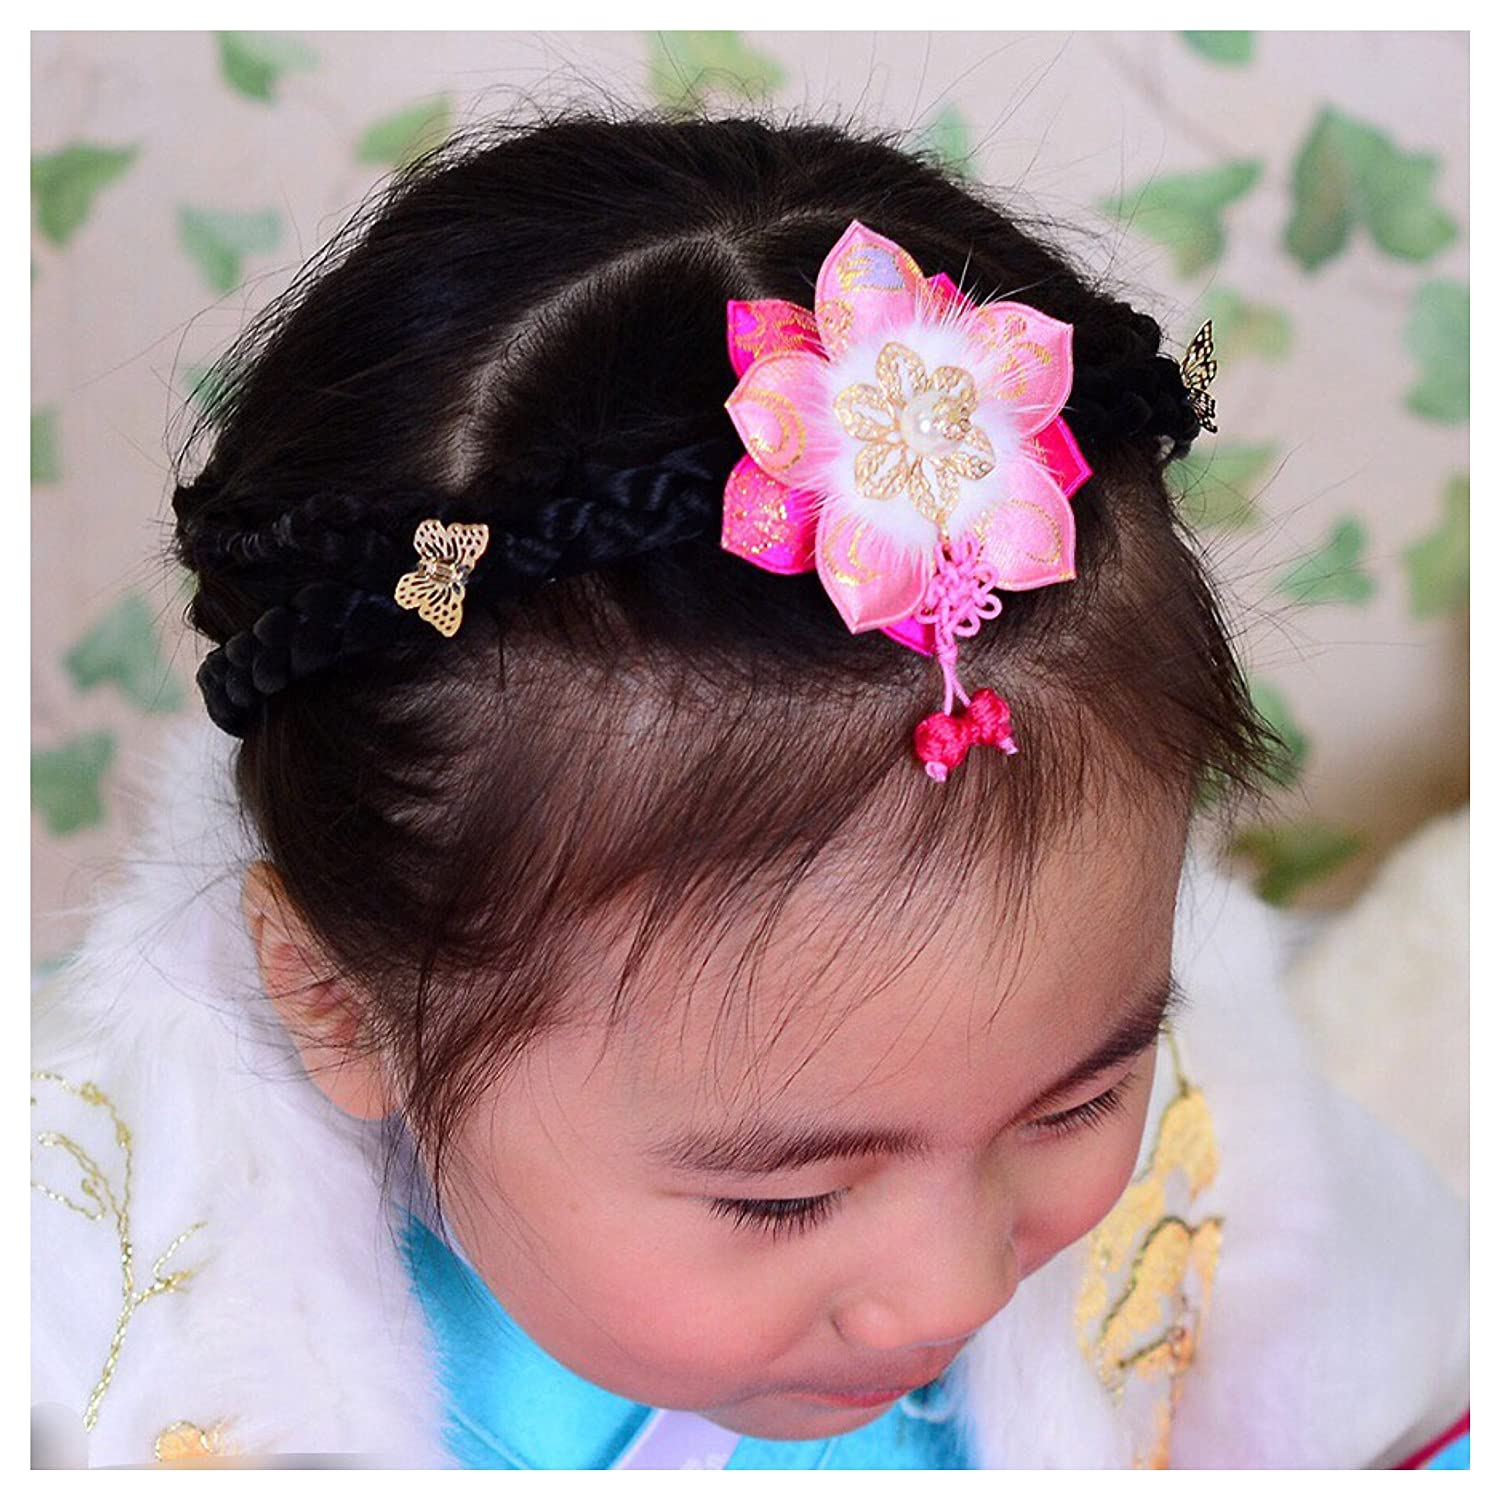 Hairband One Year birthday in Korea Chuseok Happy New Year Hair Accessory Fur and Pearl Korean Traditional Costume Hanbok Dress